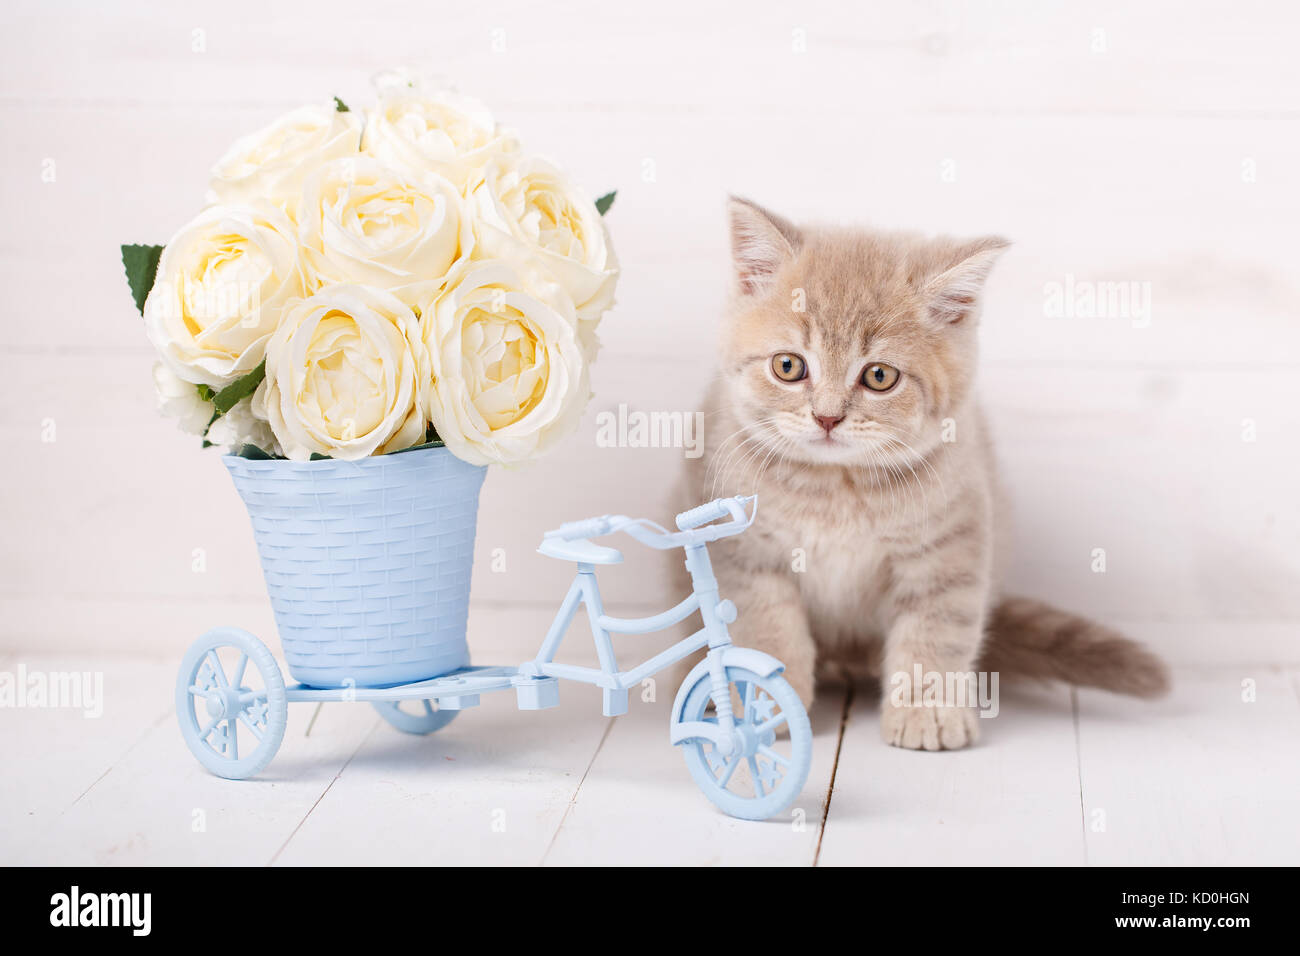 White Cat Red Roses Stock Photos & White Cat Red Roses Stock Images ...